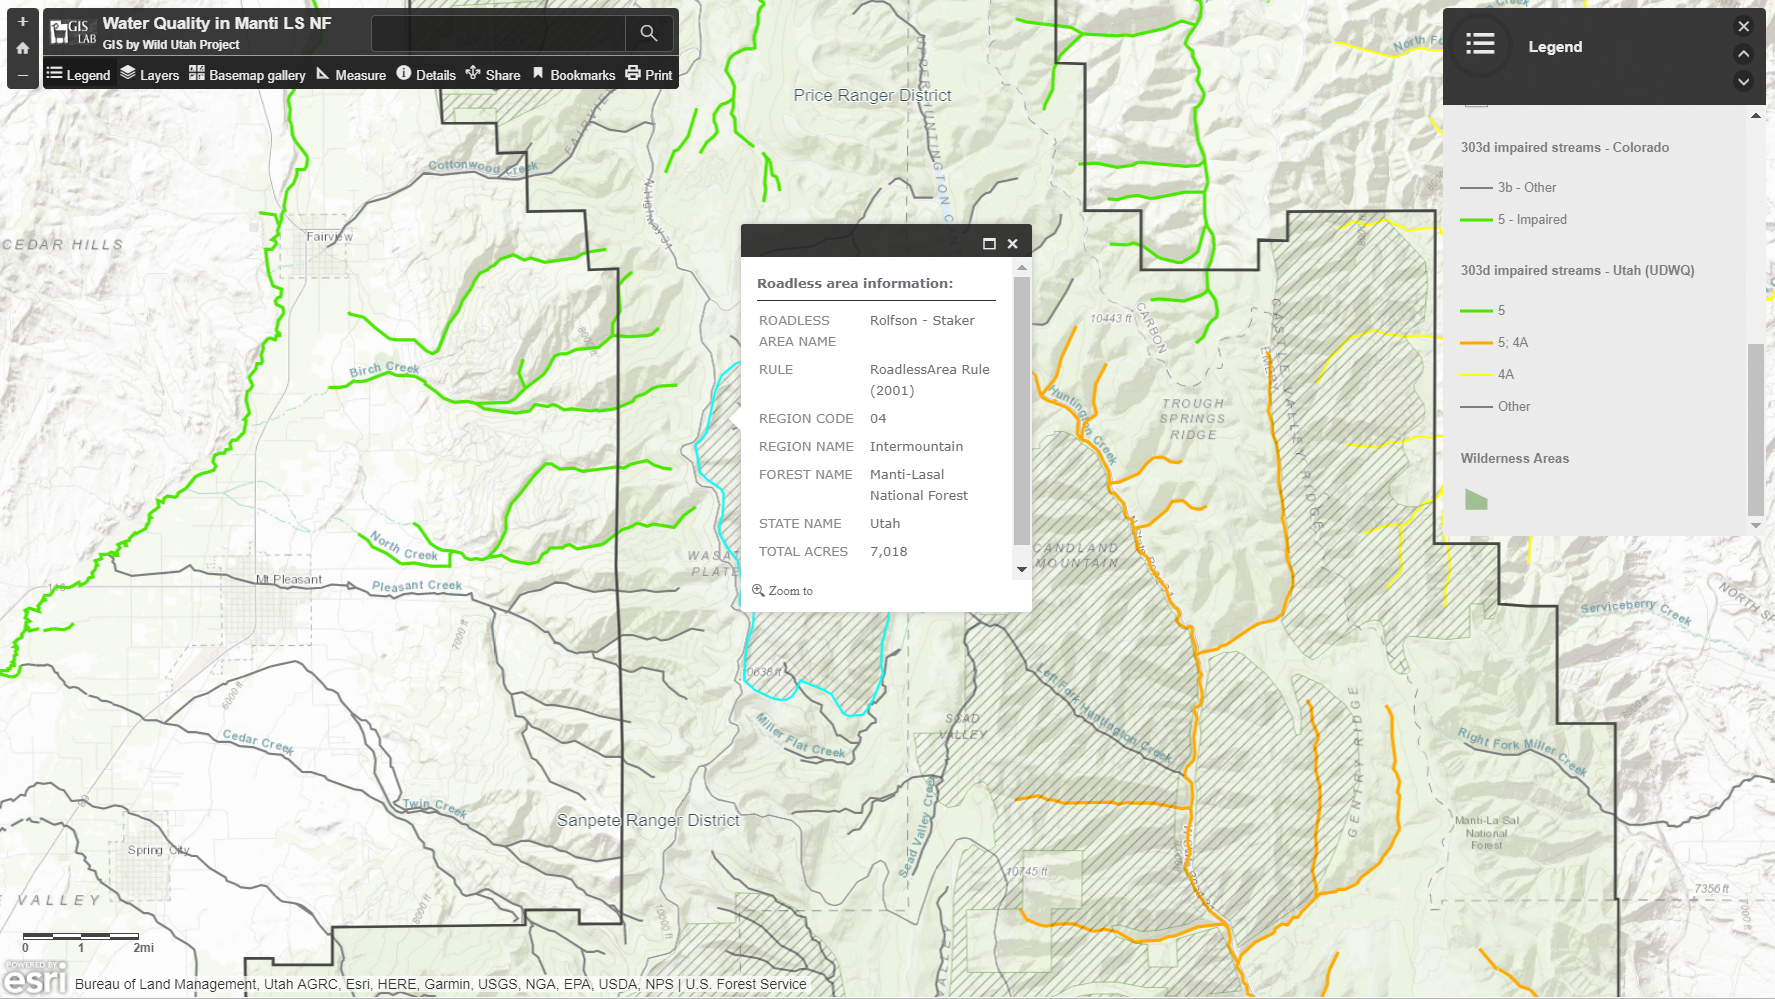 Interactive mapping of water quality in the Manti-La Sal National Forest -